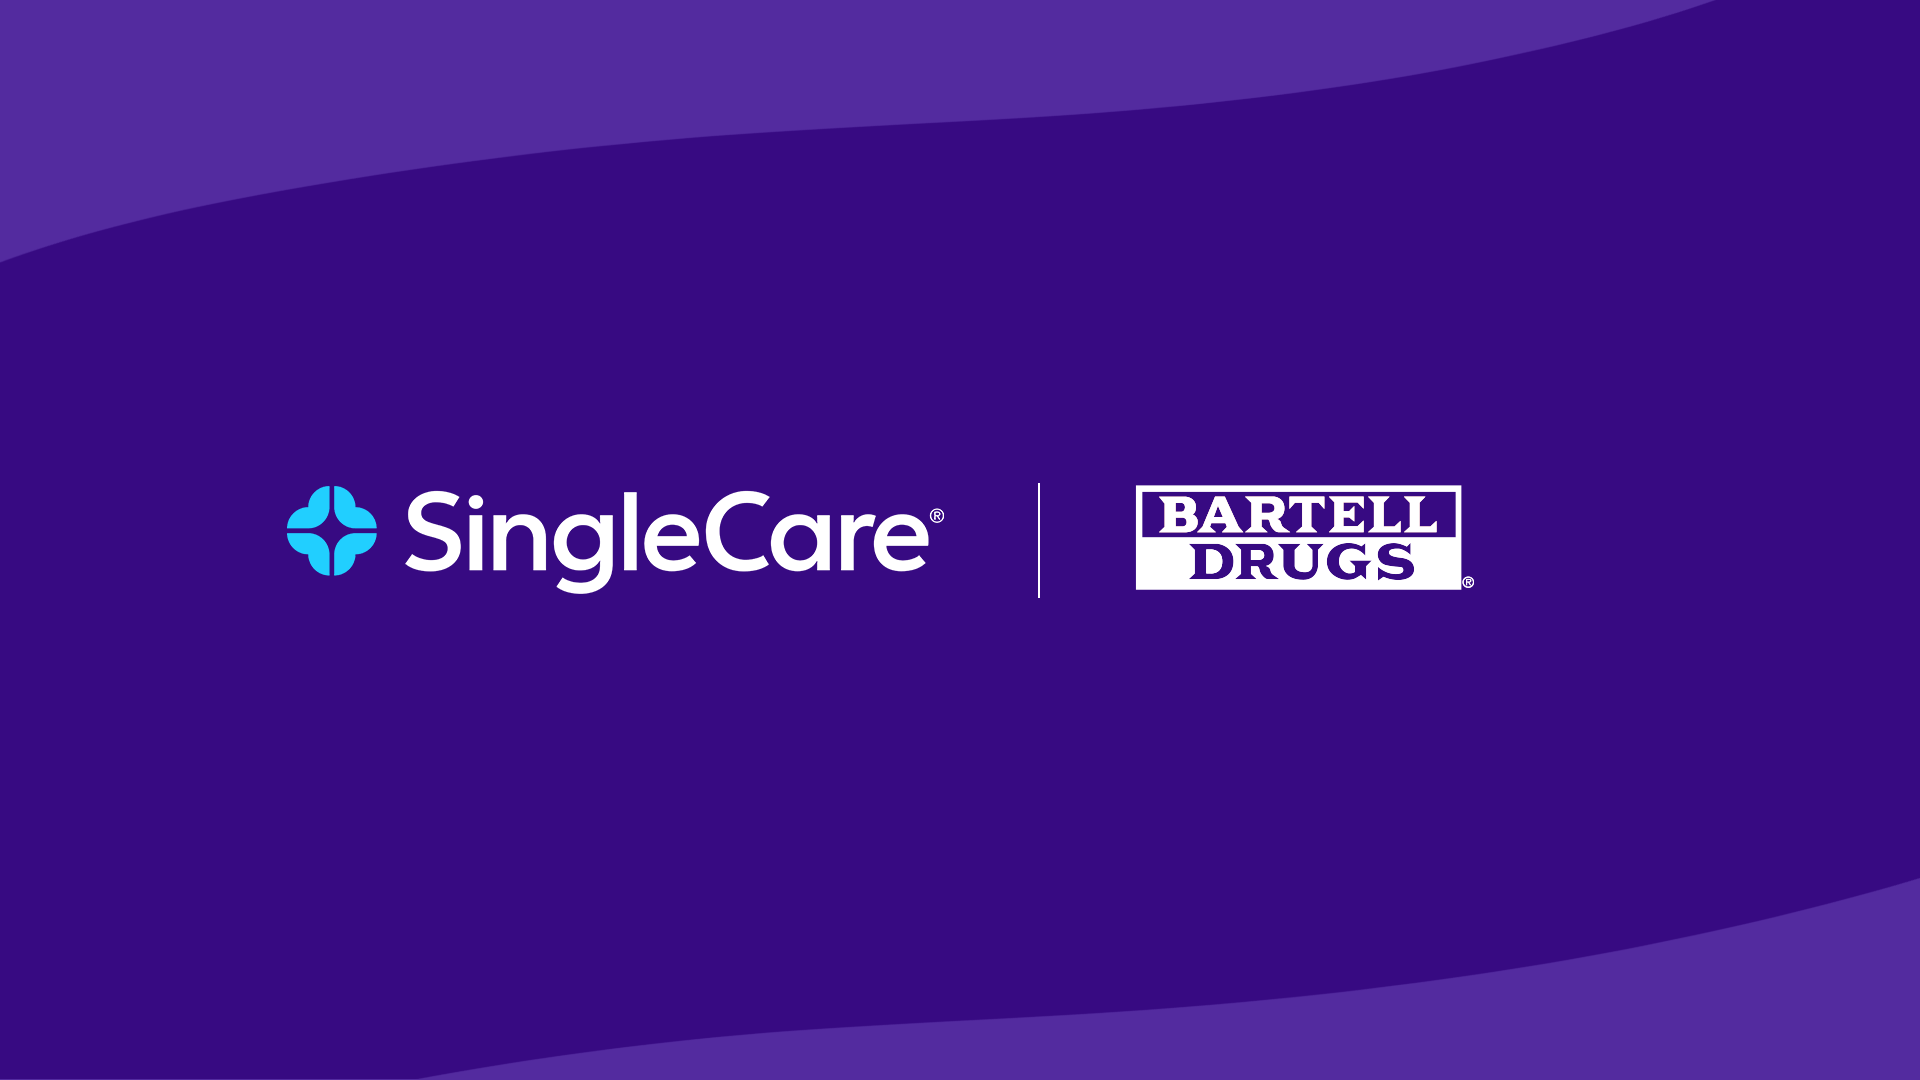 SingleCare savings are now available at Bartell Drugs